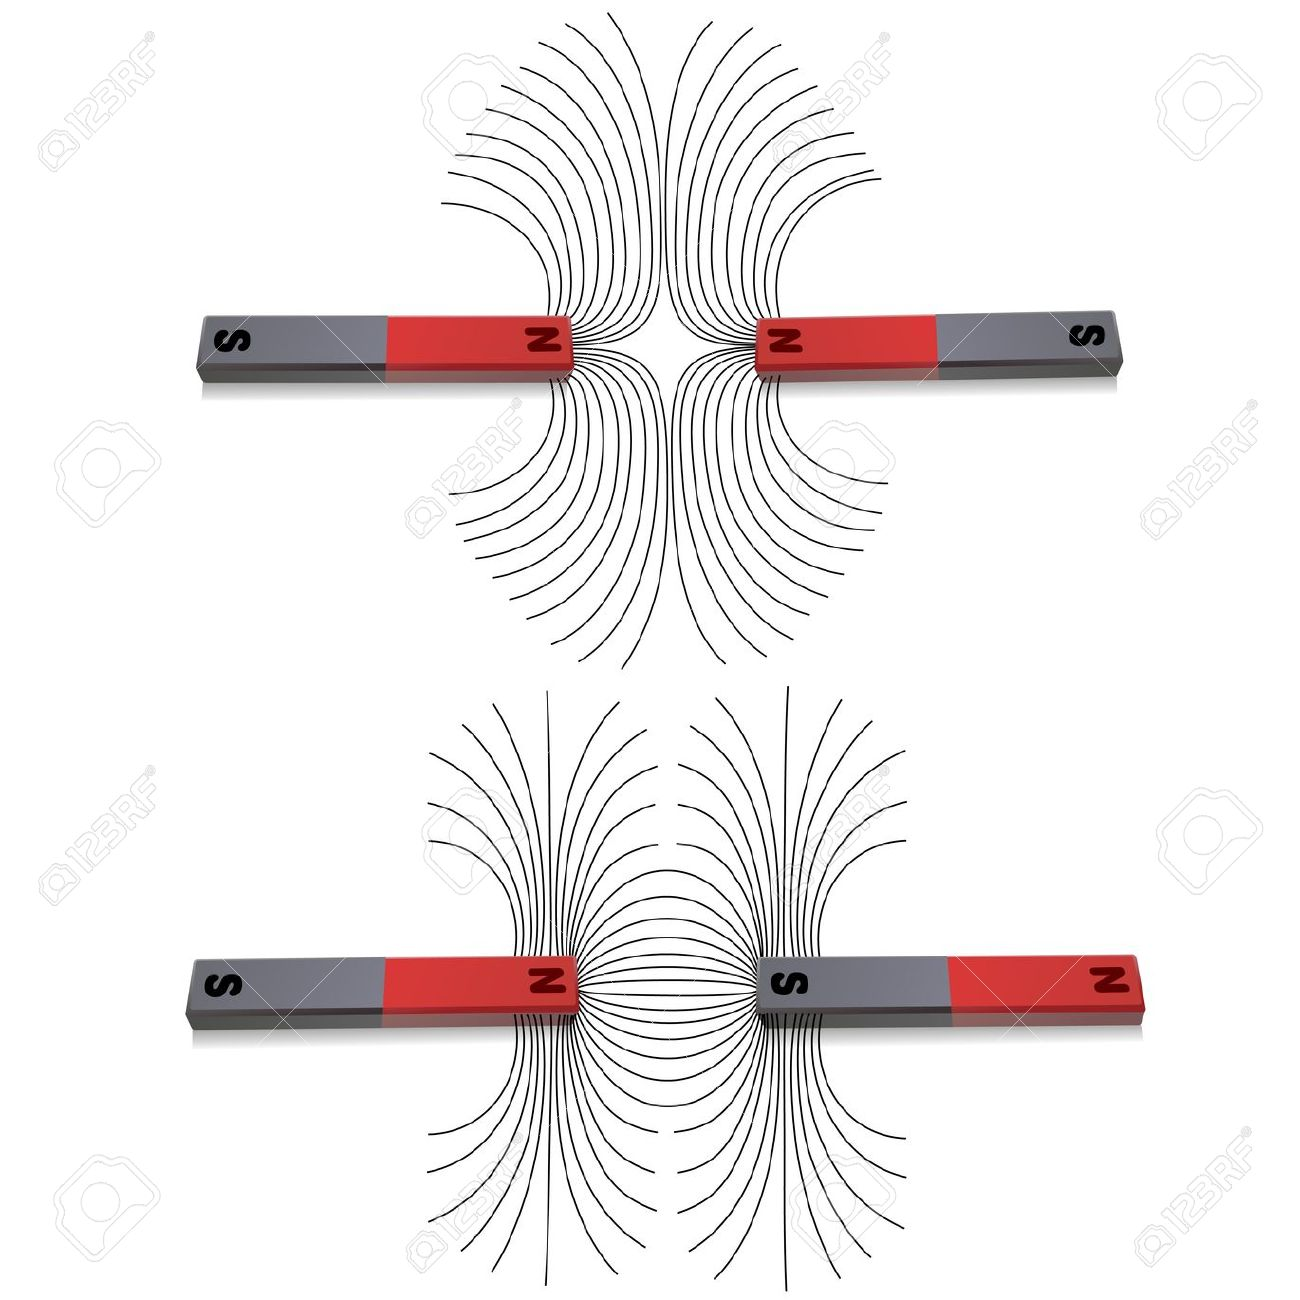 Attraction and detraction between magnetic poles